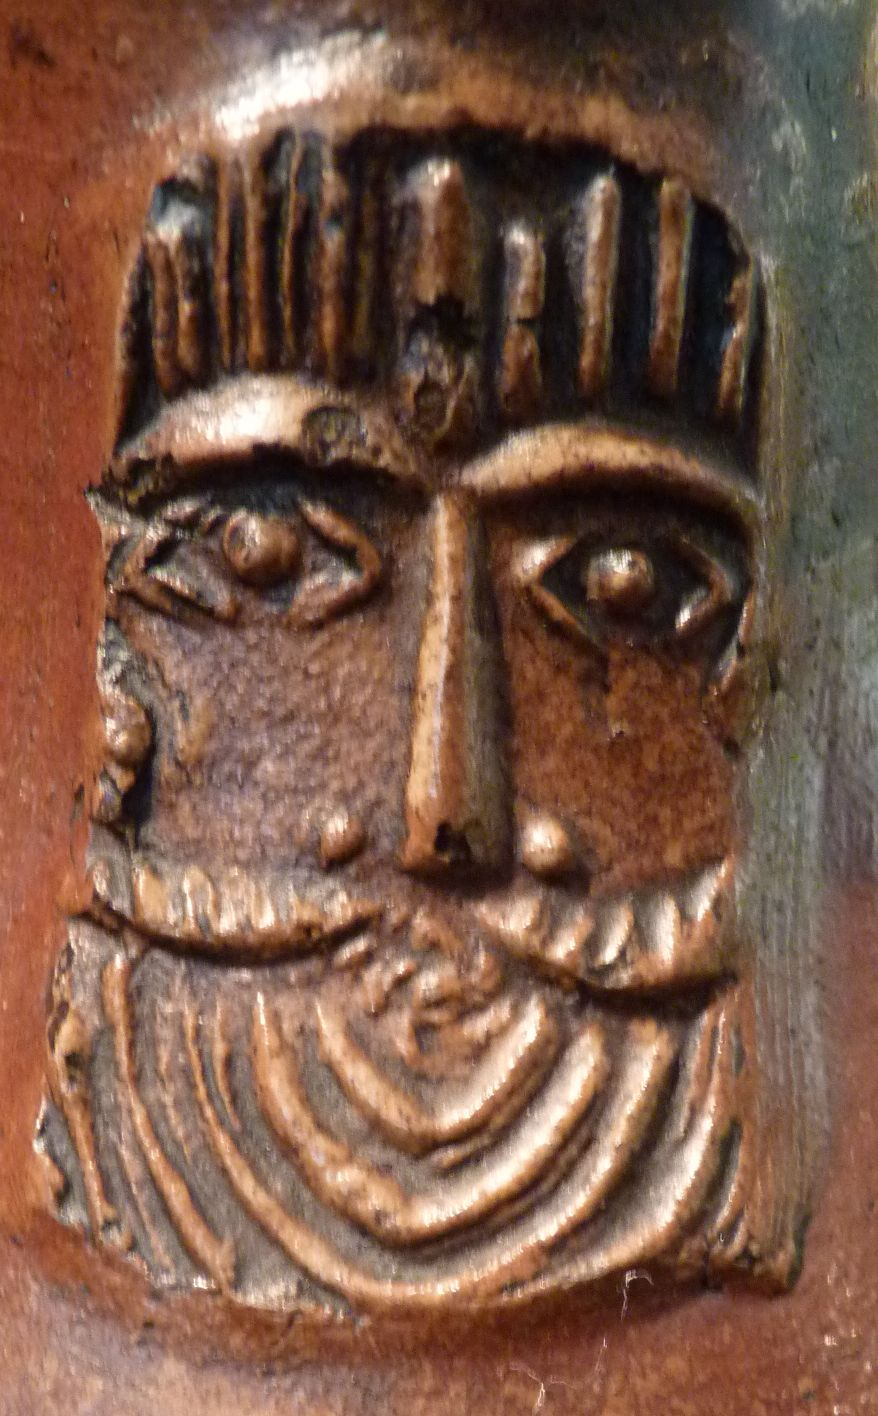 Detail from a Bellarmine jug